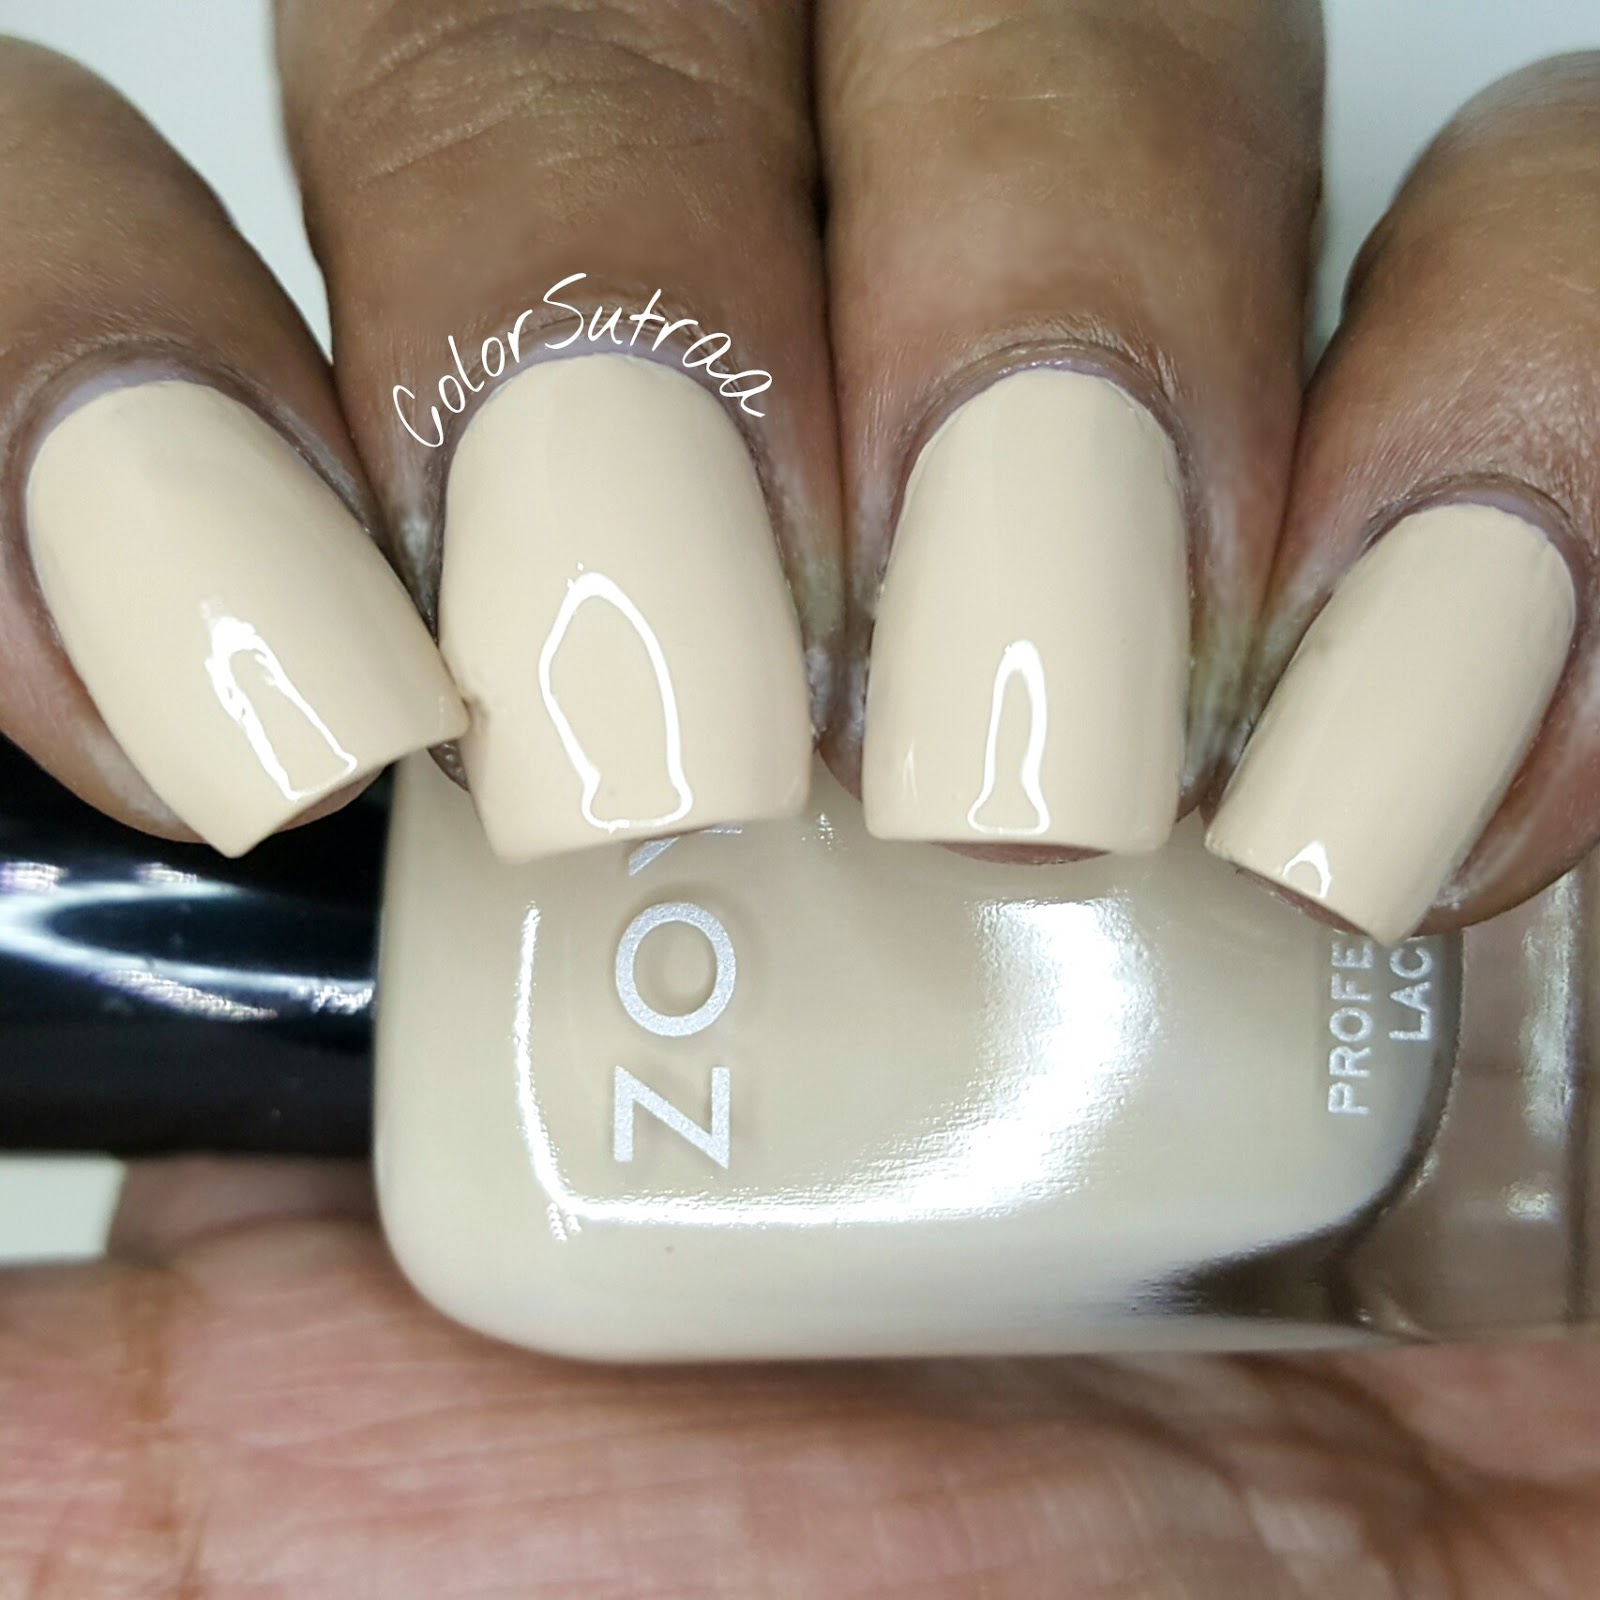 ZOYA NAIL POLISH Naturel 3 collection: Swatches and Review - ColorSutraa